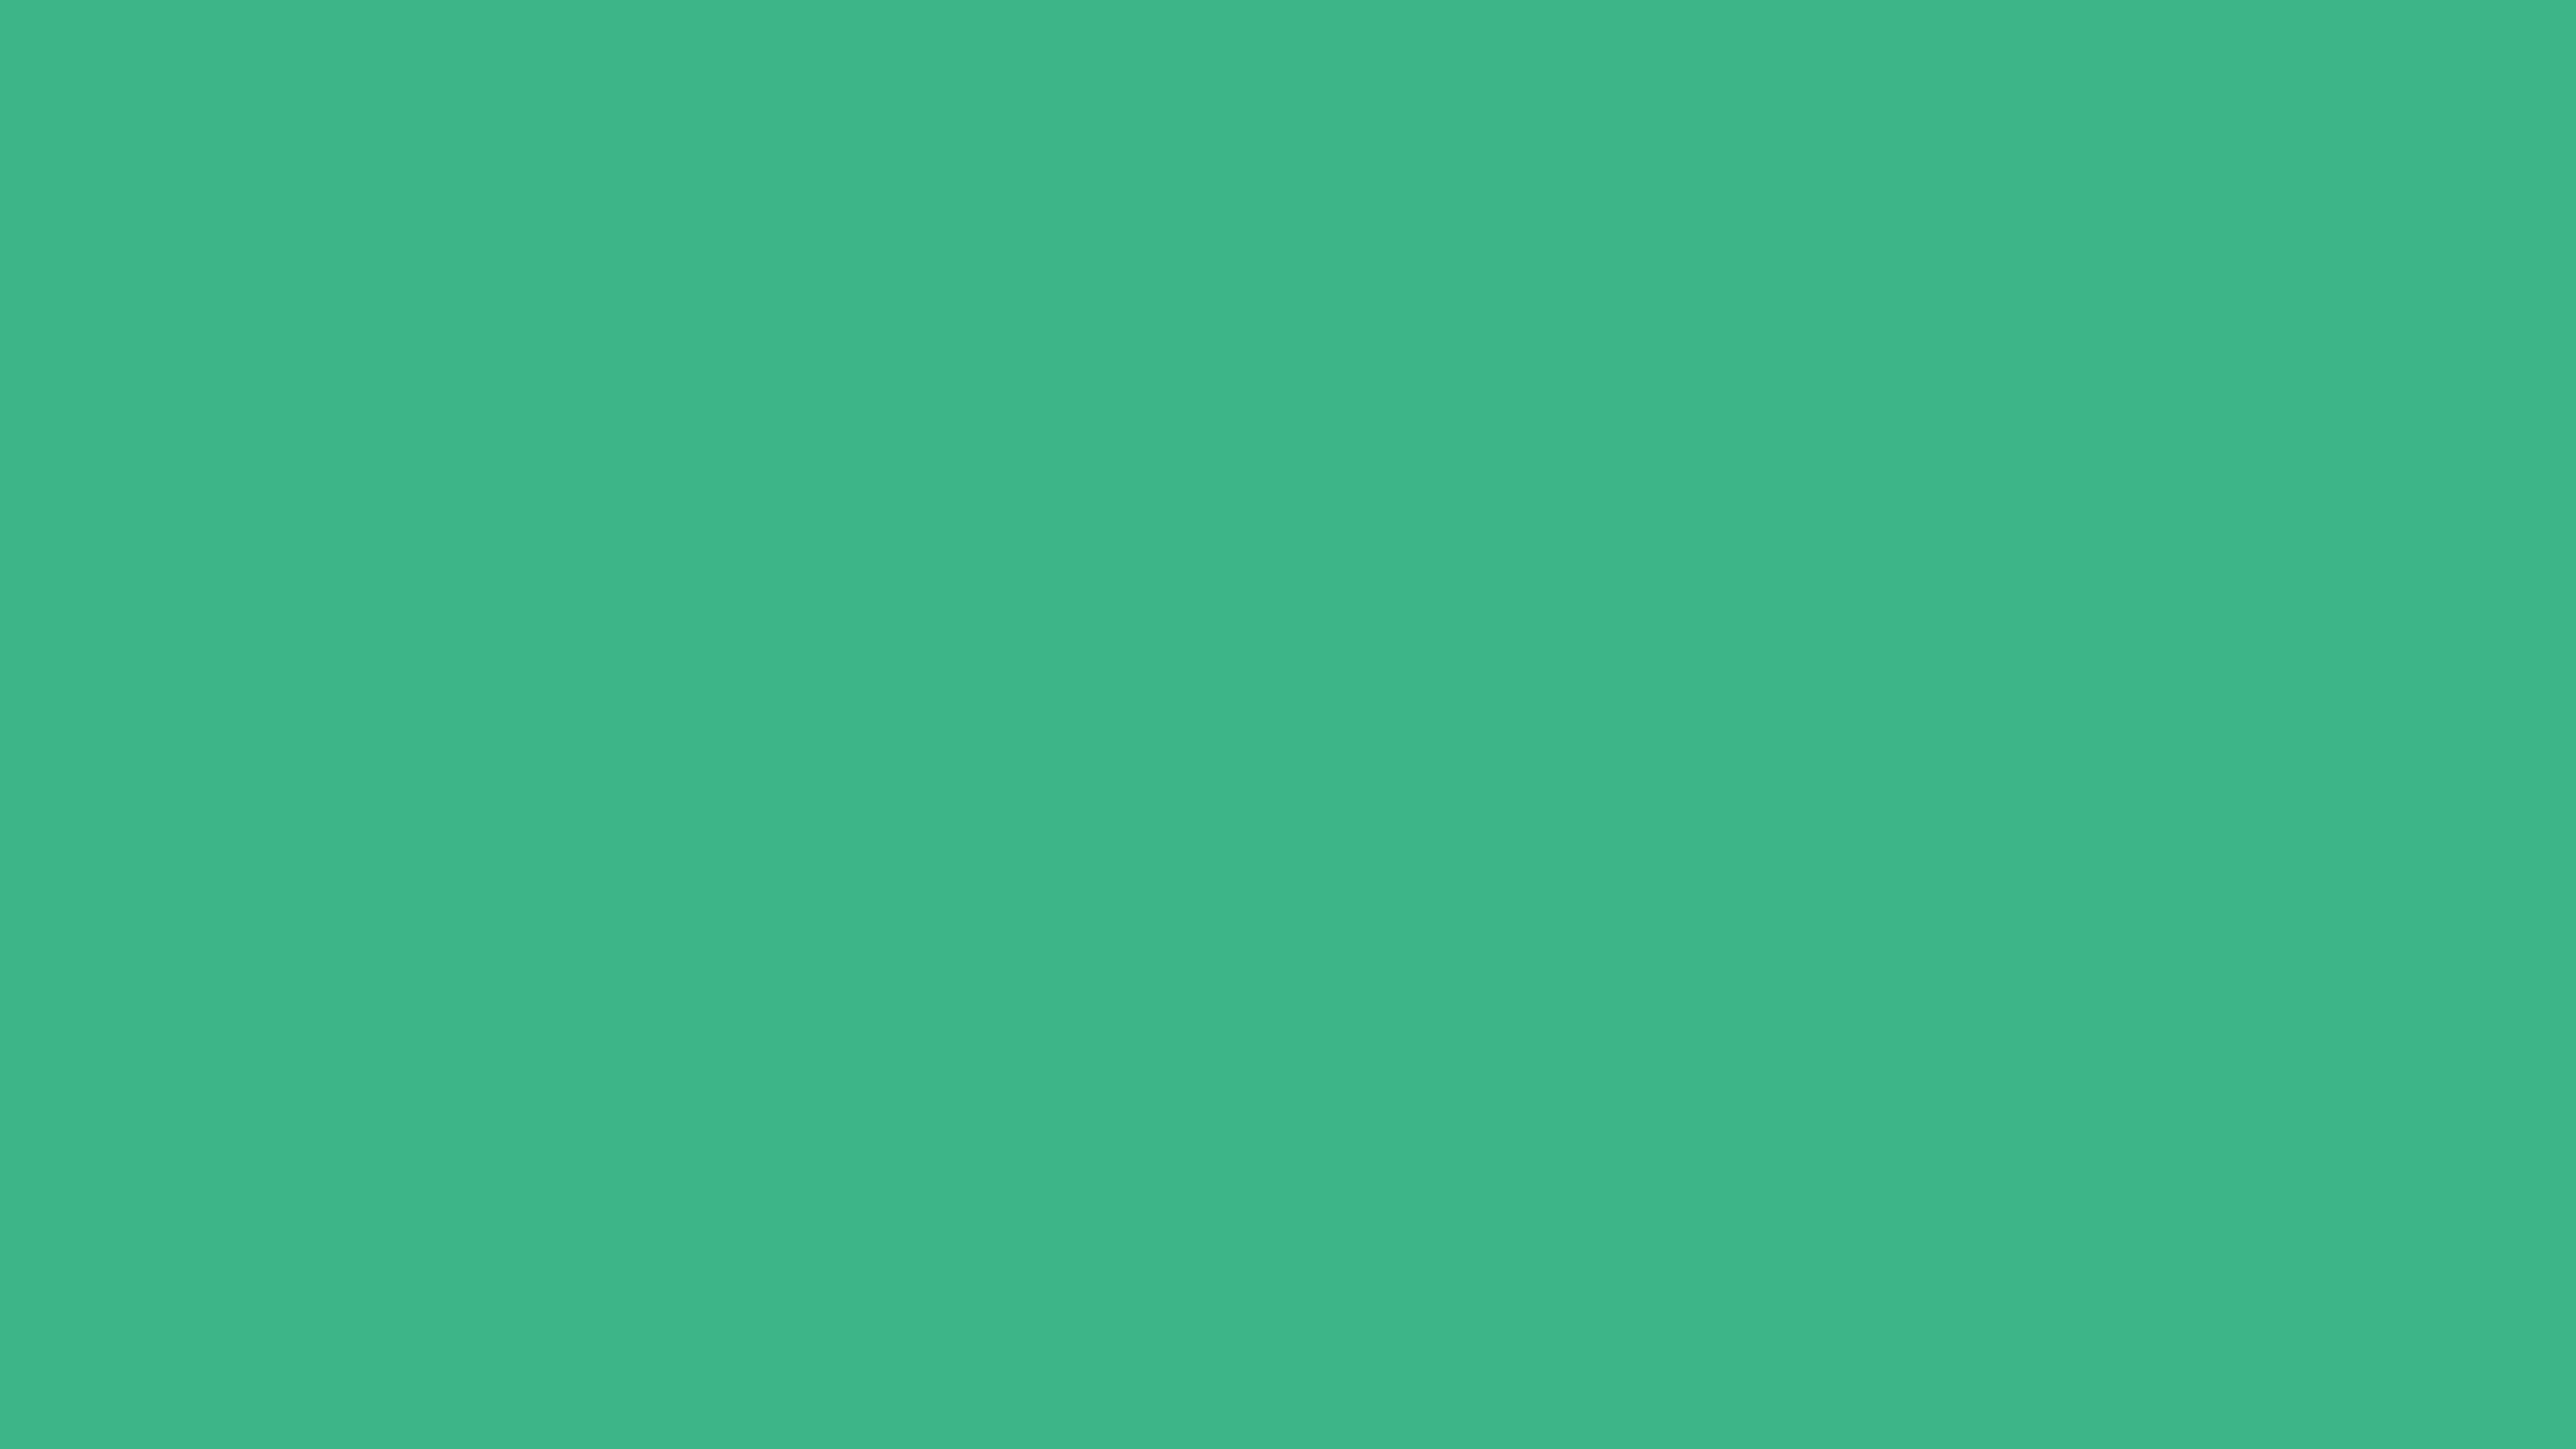 5120x2880 Mint Solid Color Background